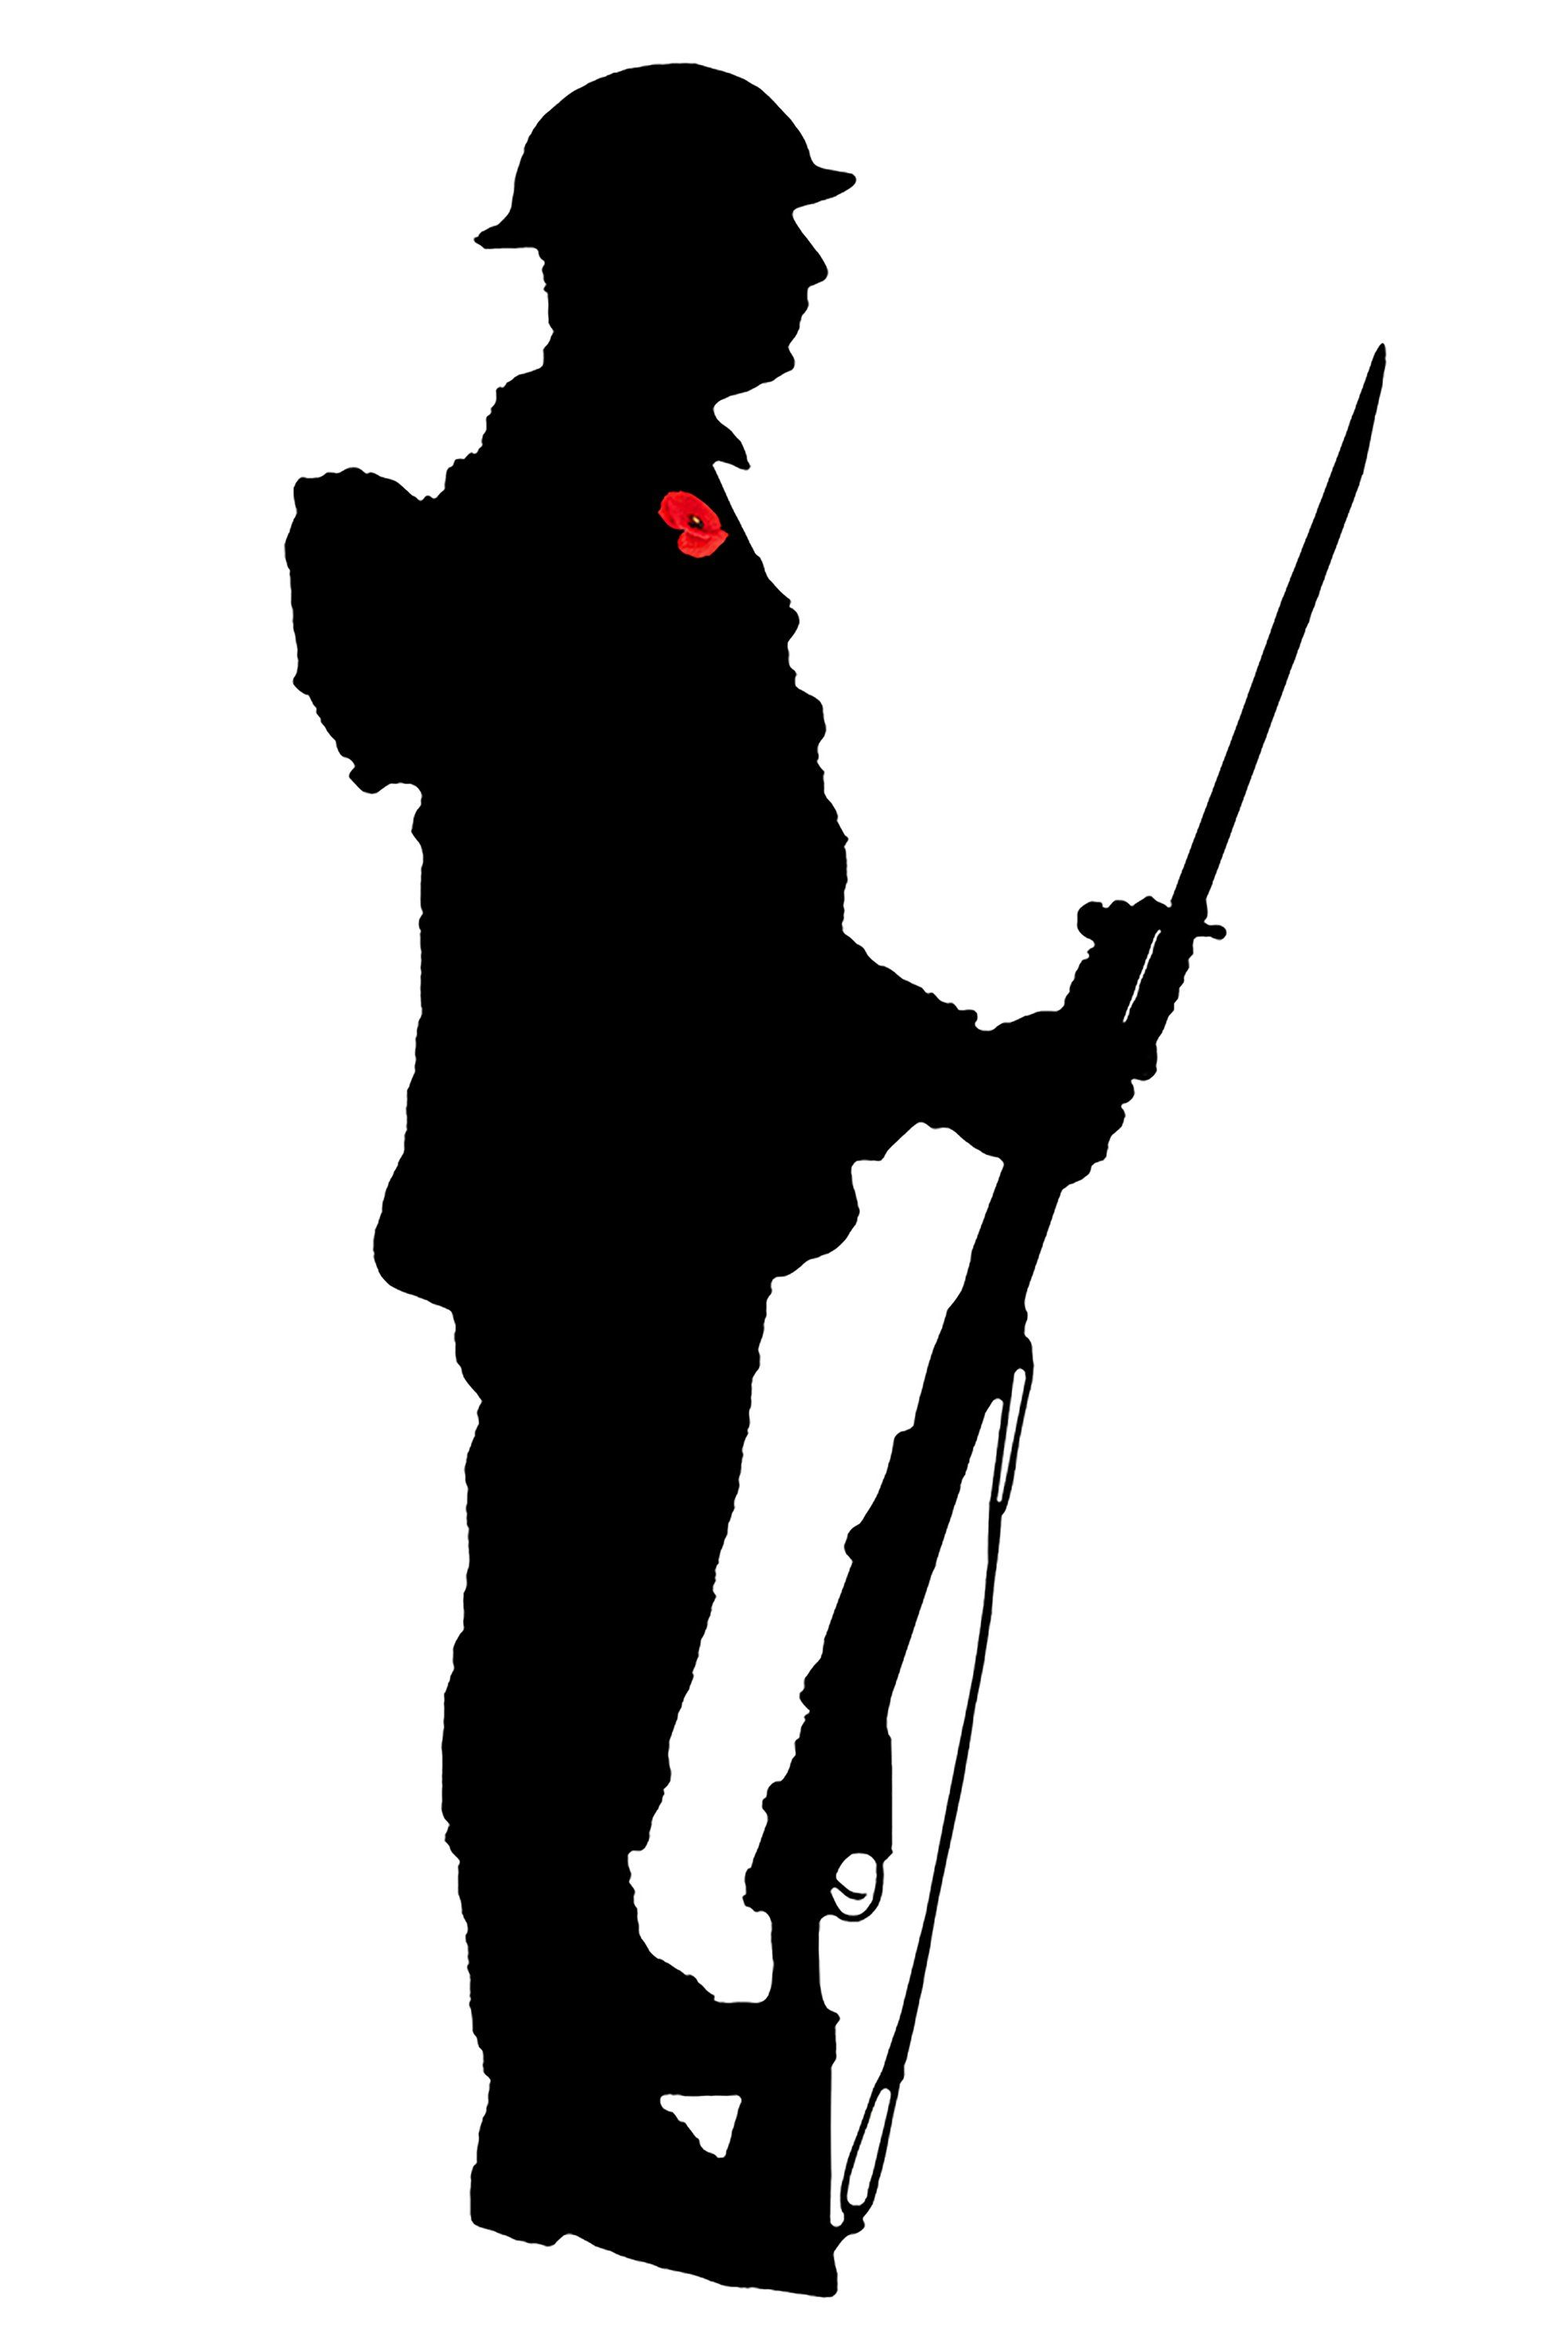 ww1 soldier silhouette world war 1 soldier silhouette at getdrawings free download silhouette ww1 soldier